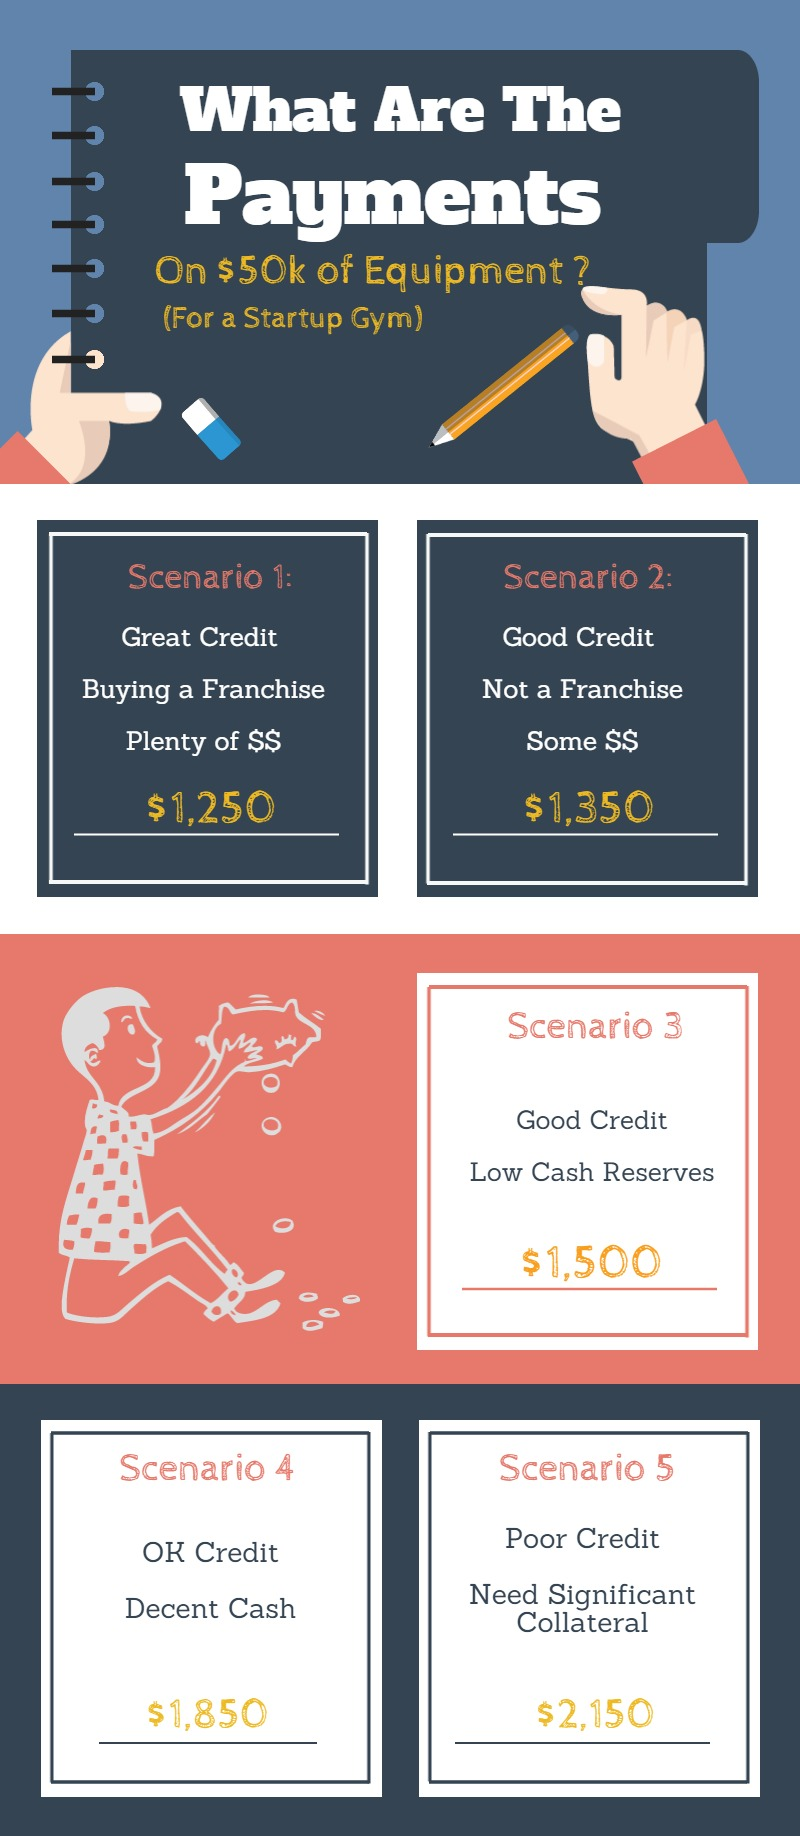 Leasing-payments-gym-startup